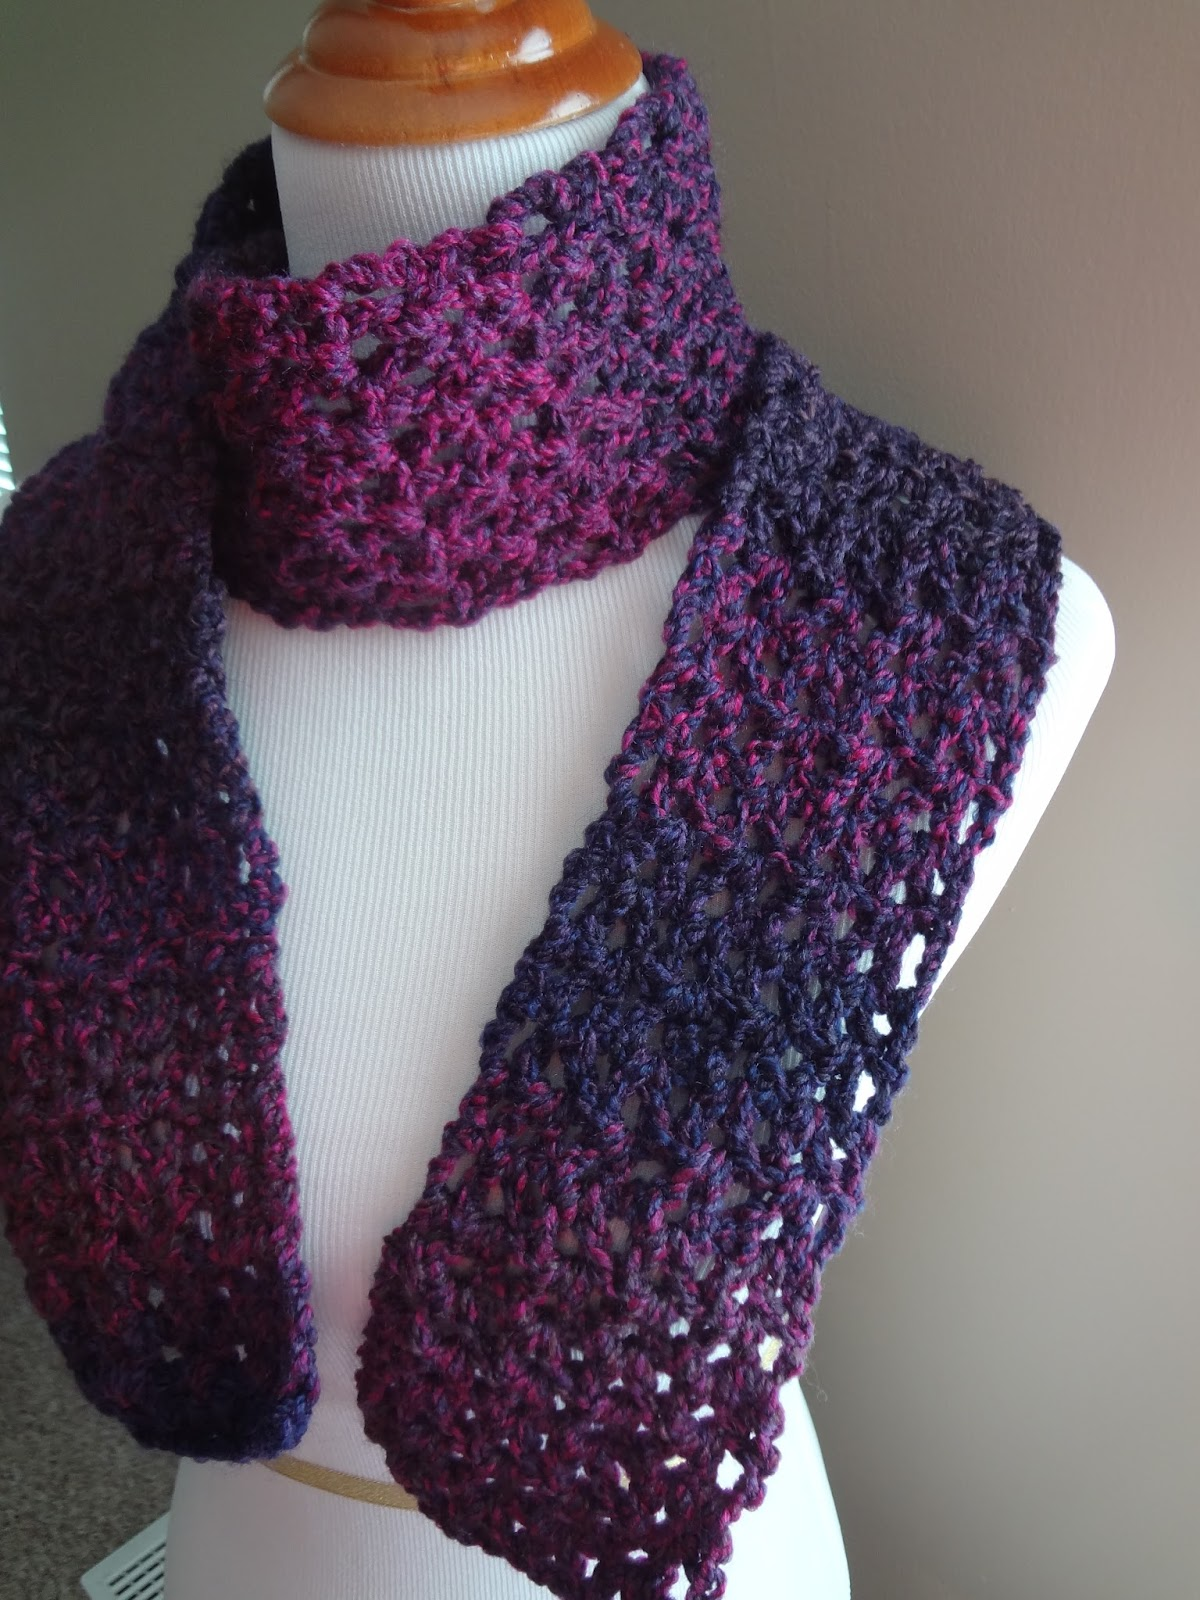 Free Crochet Pattern For Boa Scarf : Adventures in Stitching Free Crochet PatternBlueberry Pie ...